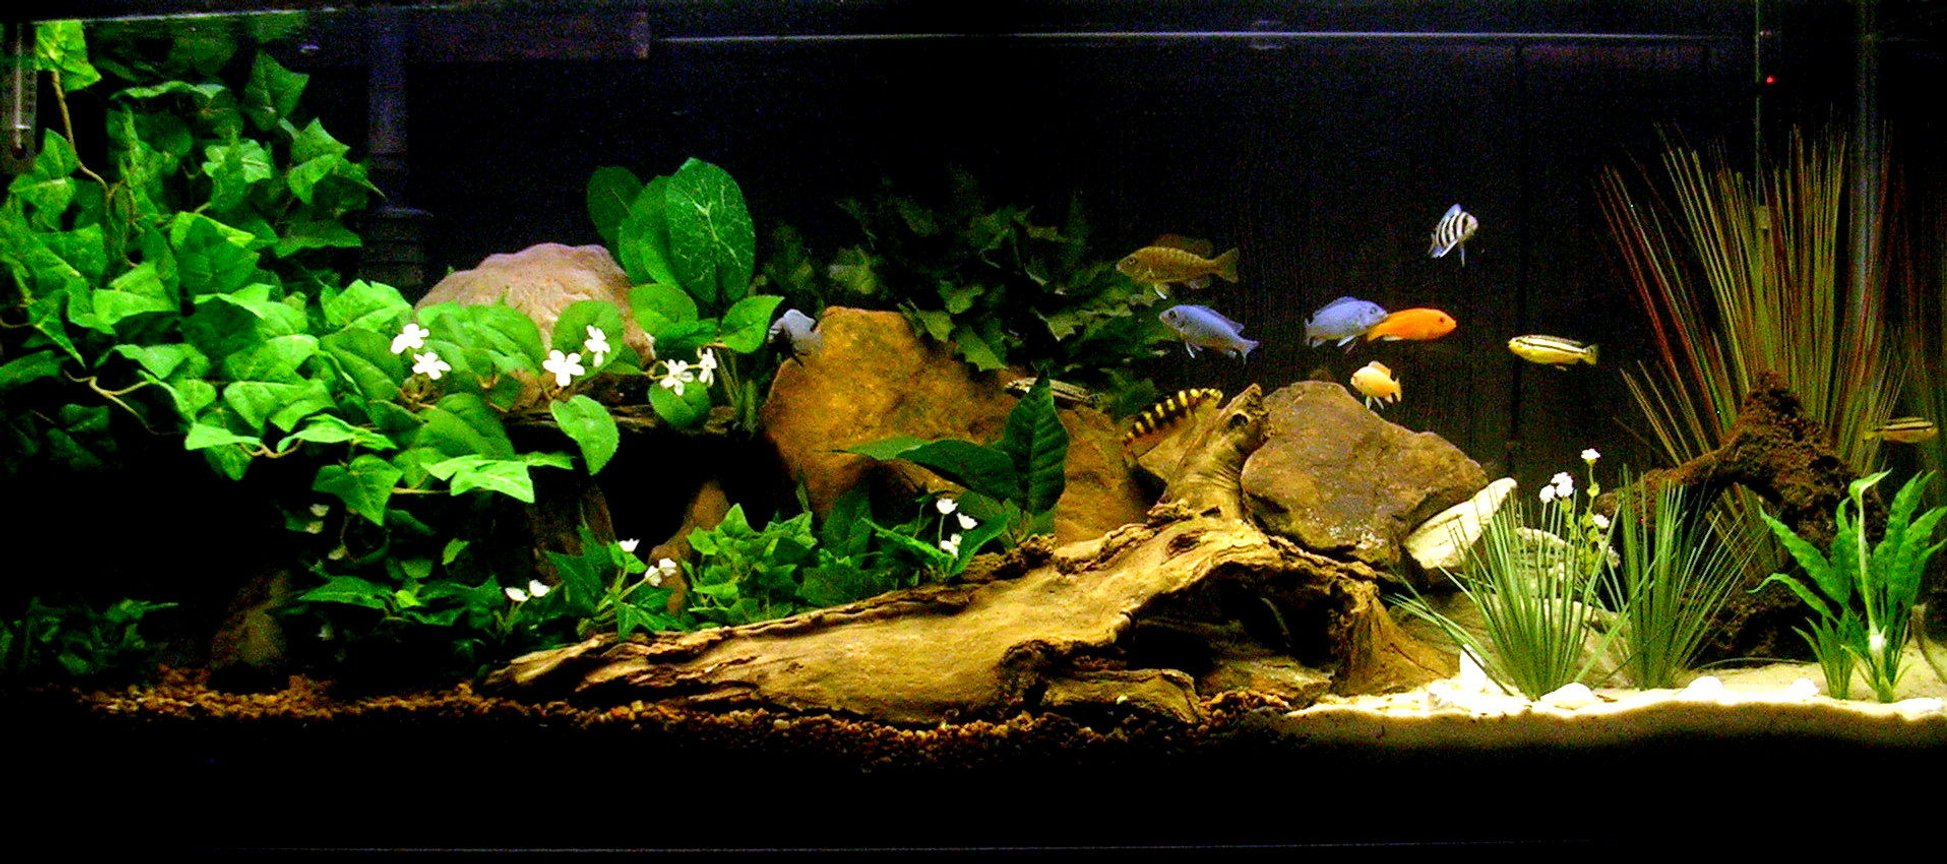 29 gallons freshwater fish tank (mostly fish and non-living decorations) - My Cichlid Sanctuary.